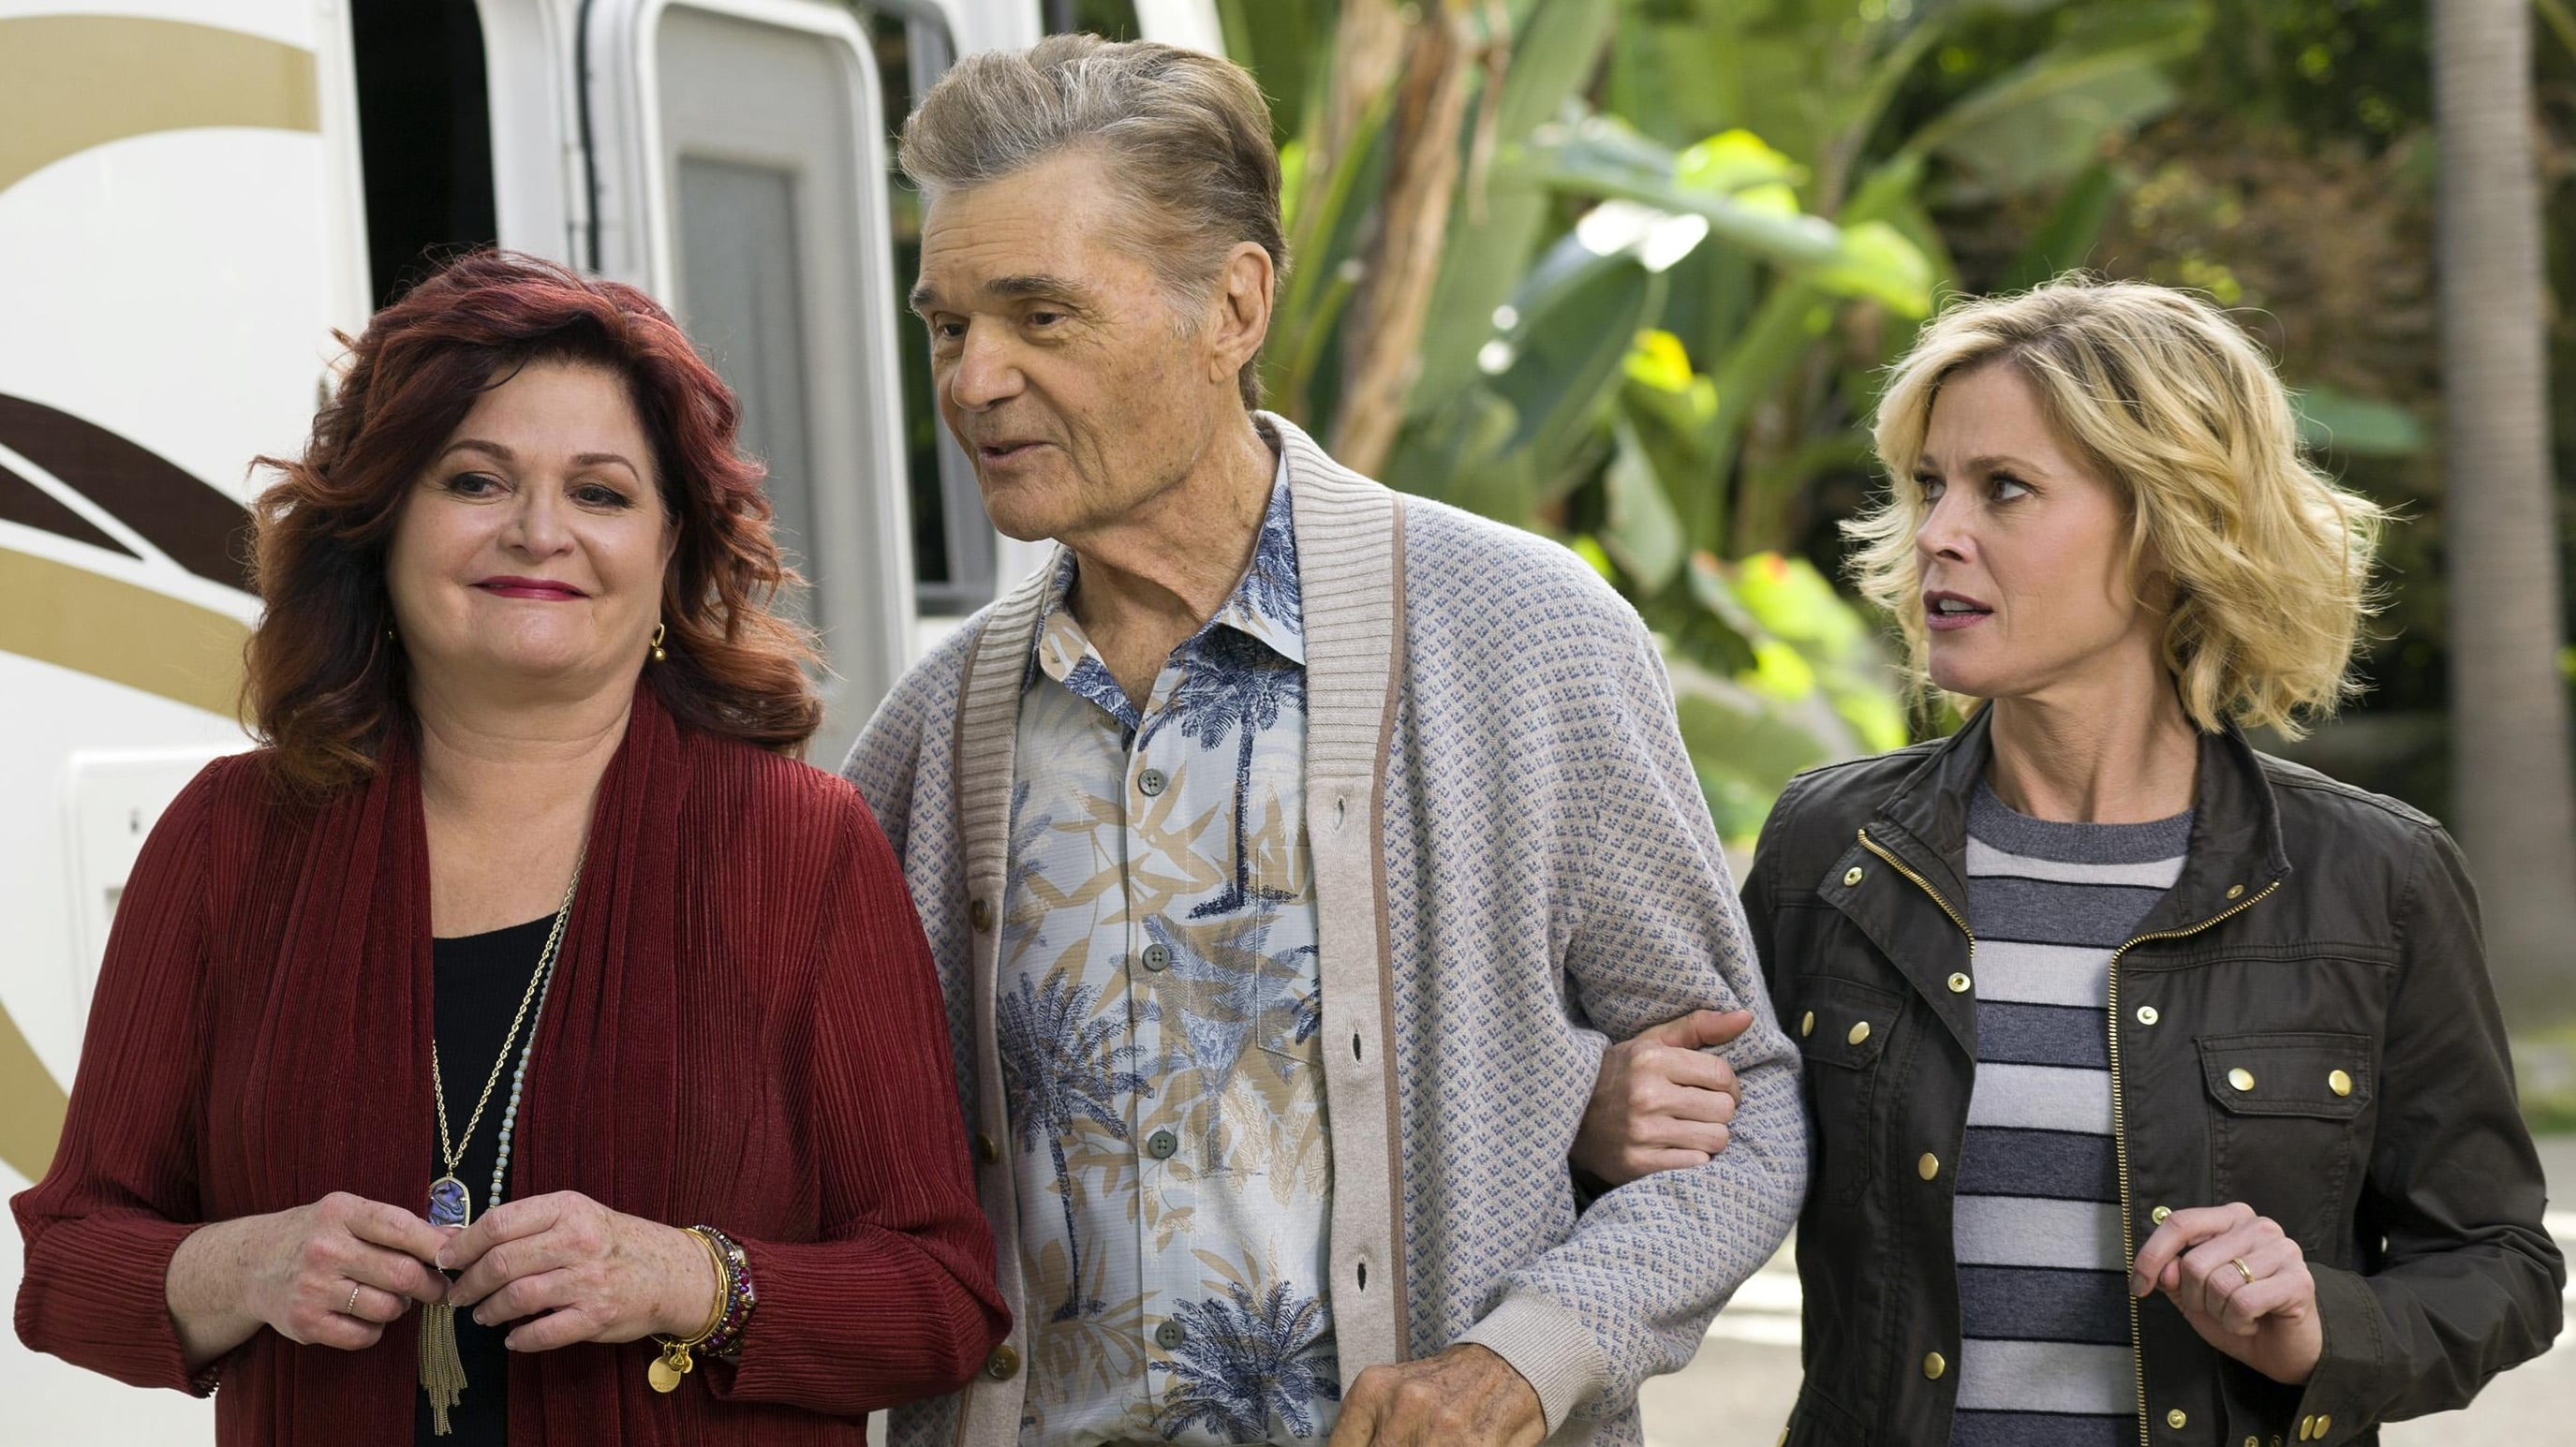 Modern family season 5 episode 10 online - Famous movie mansions